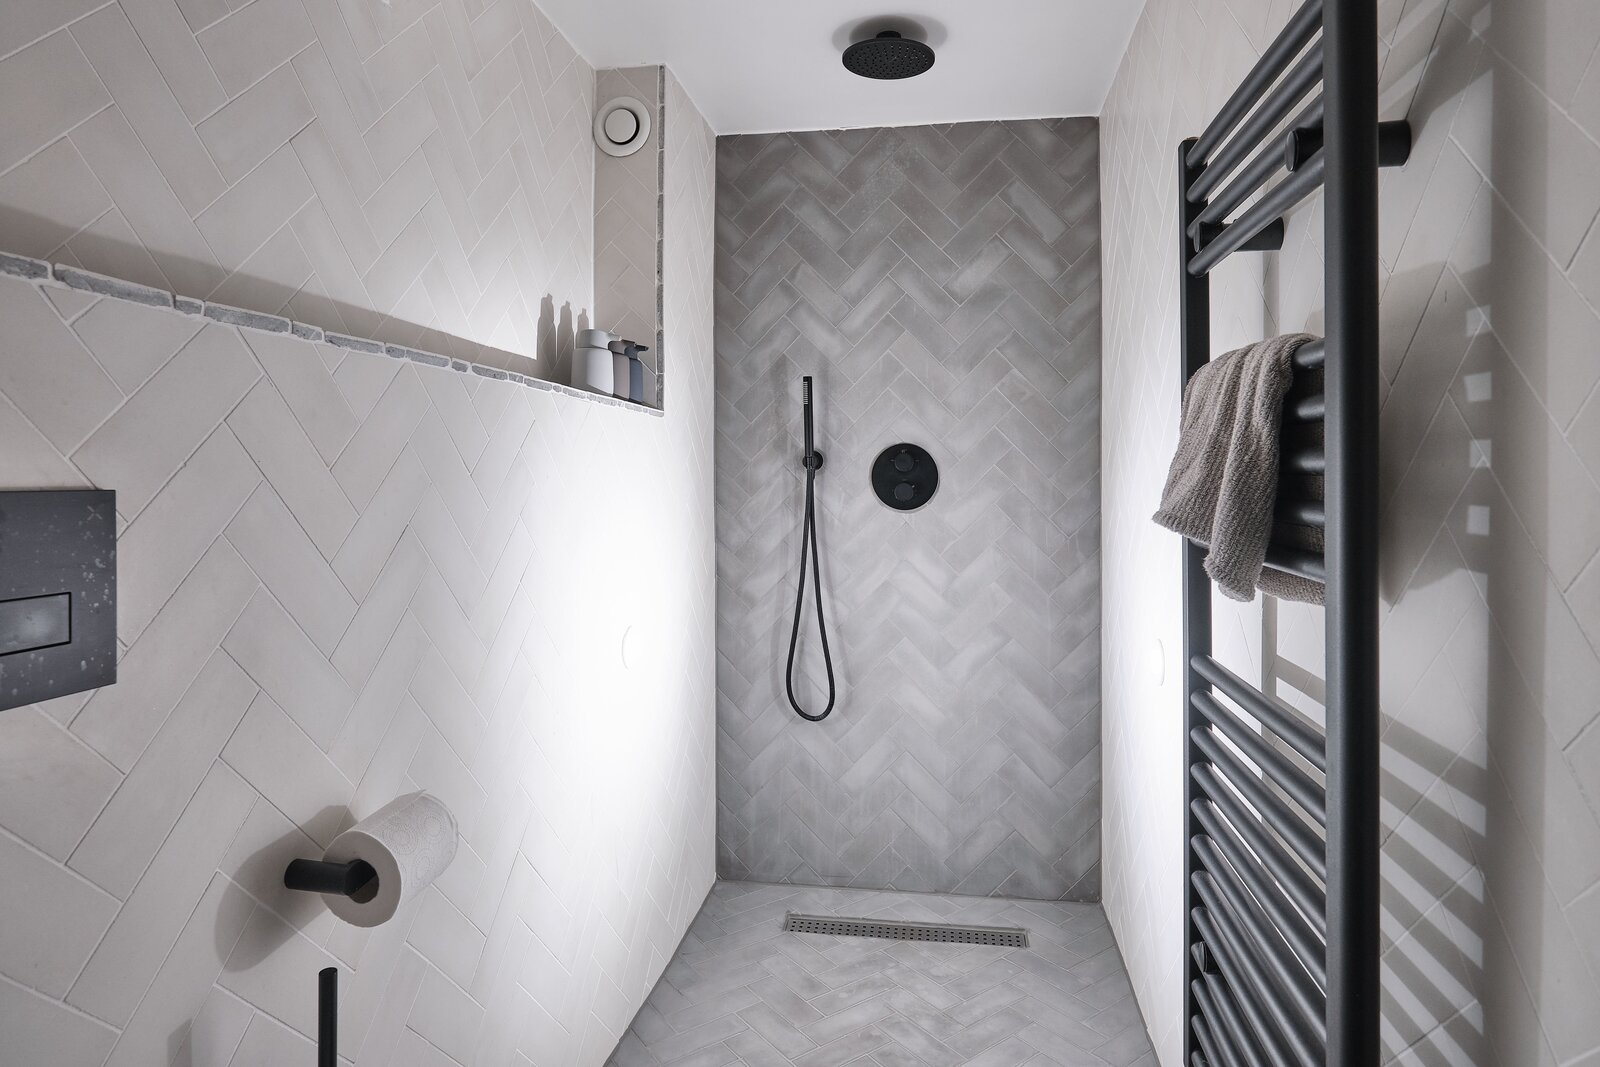 """Bath Room and Full Shower The en suite shower room offers tile by <span style=""""font-family: Theinhardt, -apple-system, BlinkMacSystemFont, &quot;Segoe UI&quot;, Roboto, Oxygen-Sans, Ubuntu, Cantarell, &quot;Helvetica Neue&quot;, sans-serif;"""">Bert &amp; May alongside Vola fixtures.</span>  Photo 10 of 13 in For £1.2M, Snag This Spacious London Flat Inside a Converted Victorian Schoolhouse"""